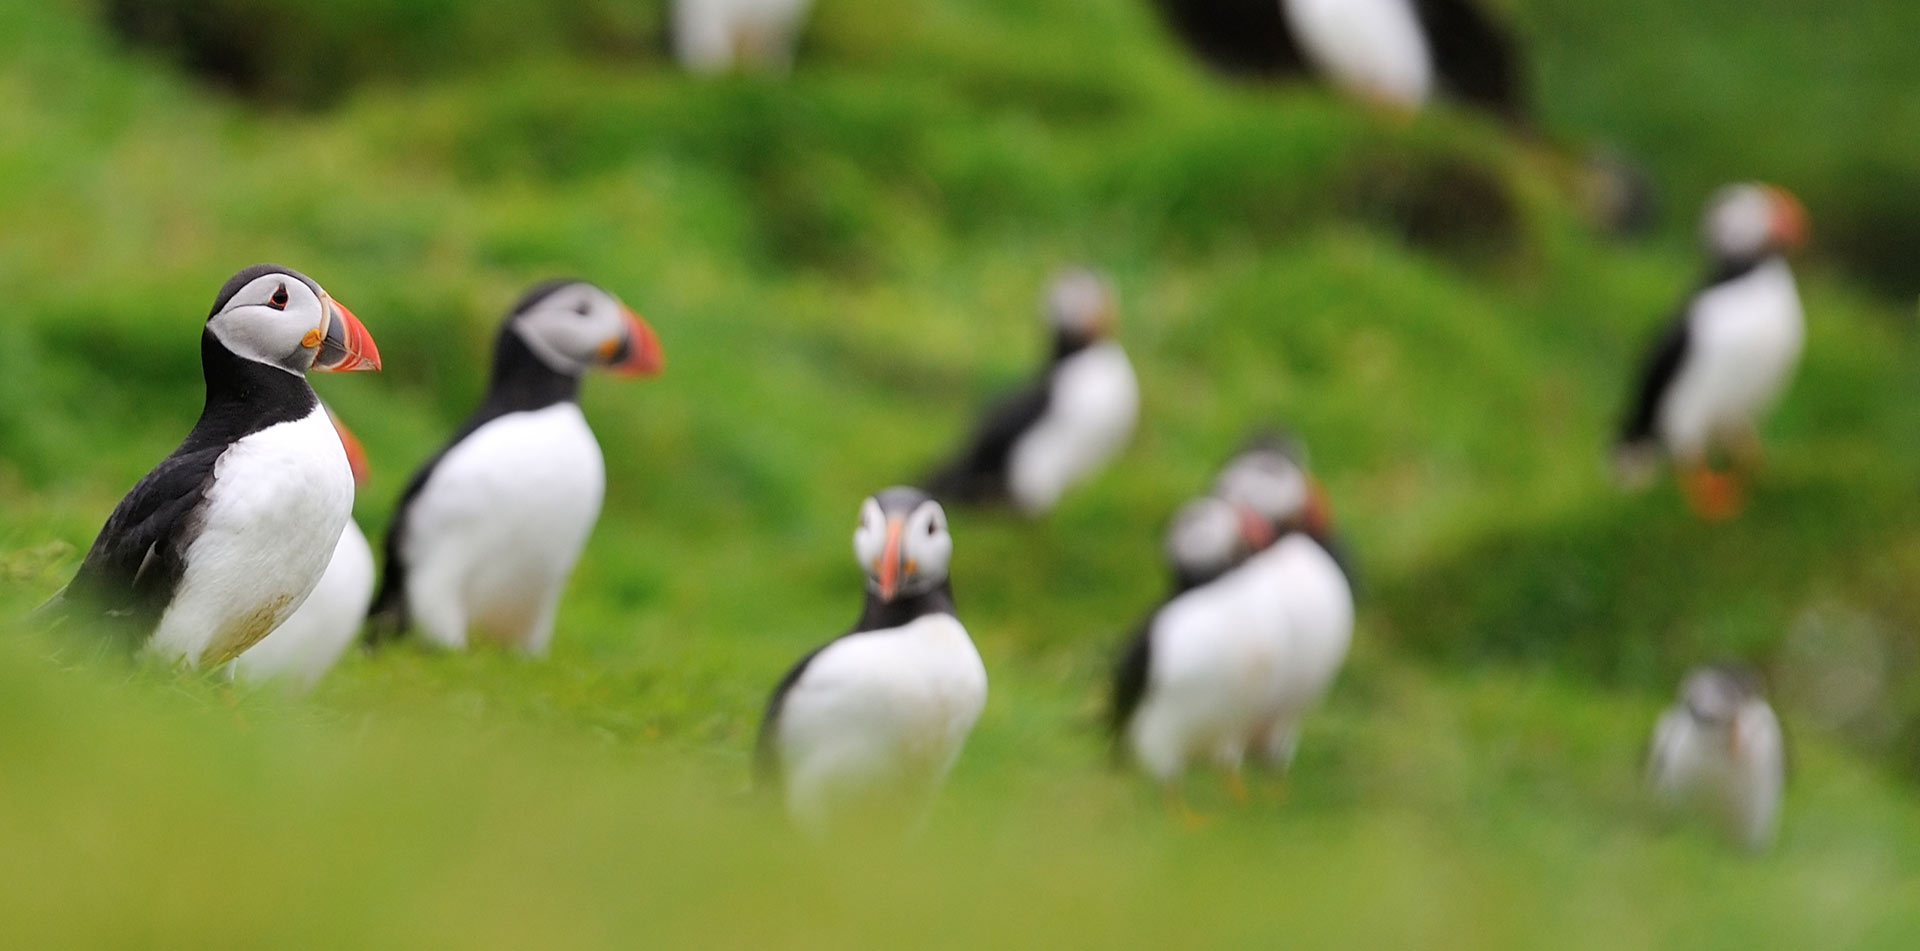 Colony of Puffins on Westman Islands in Iceland